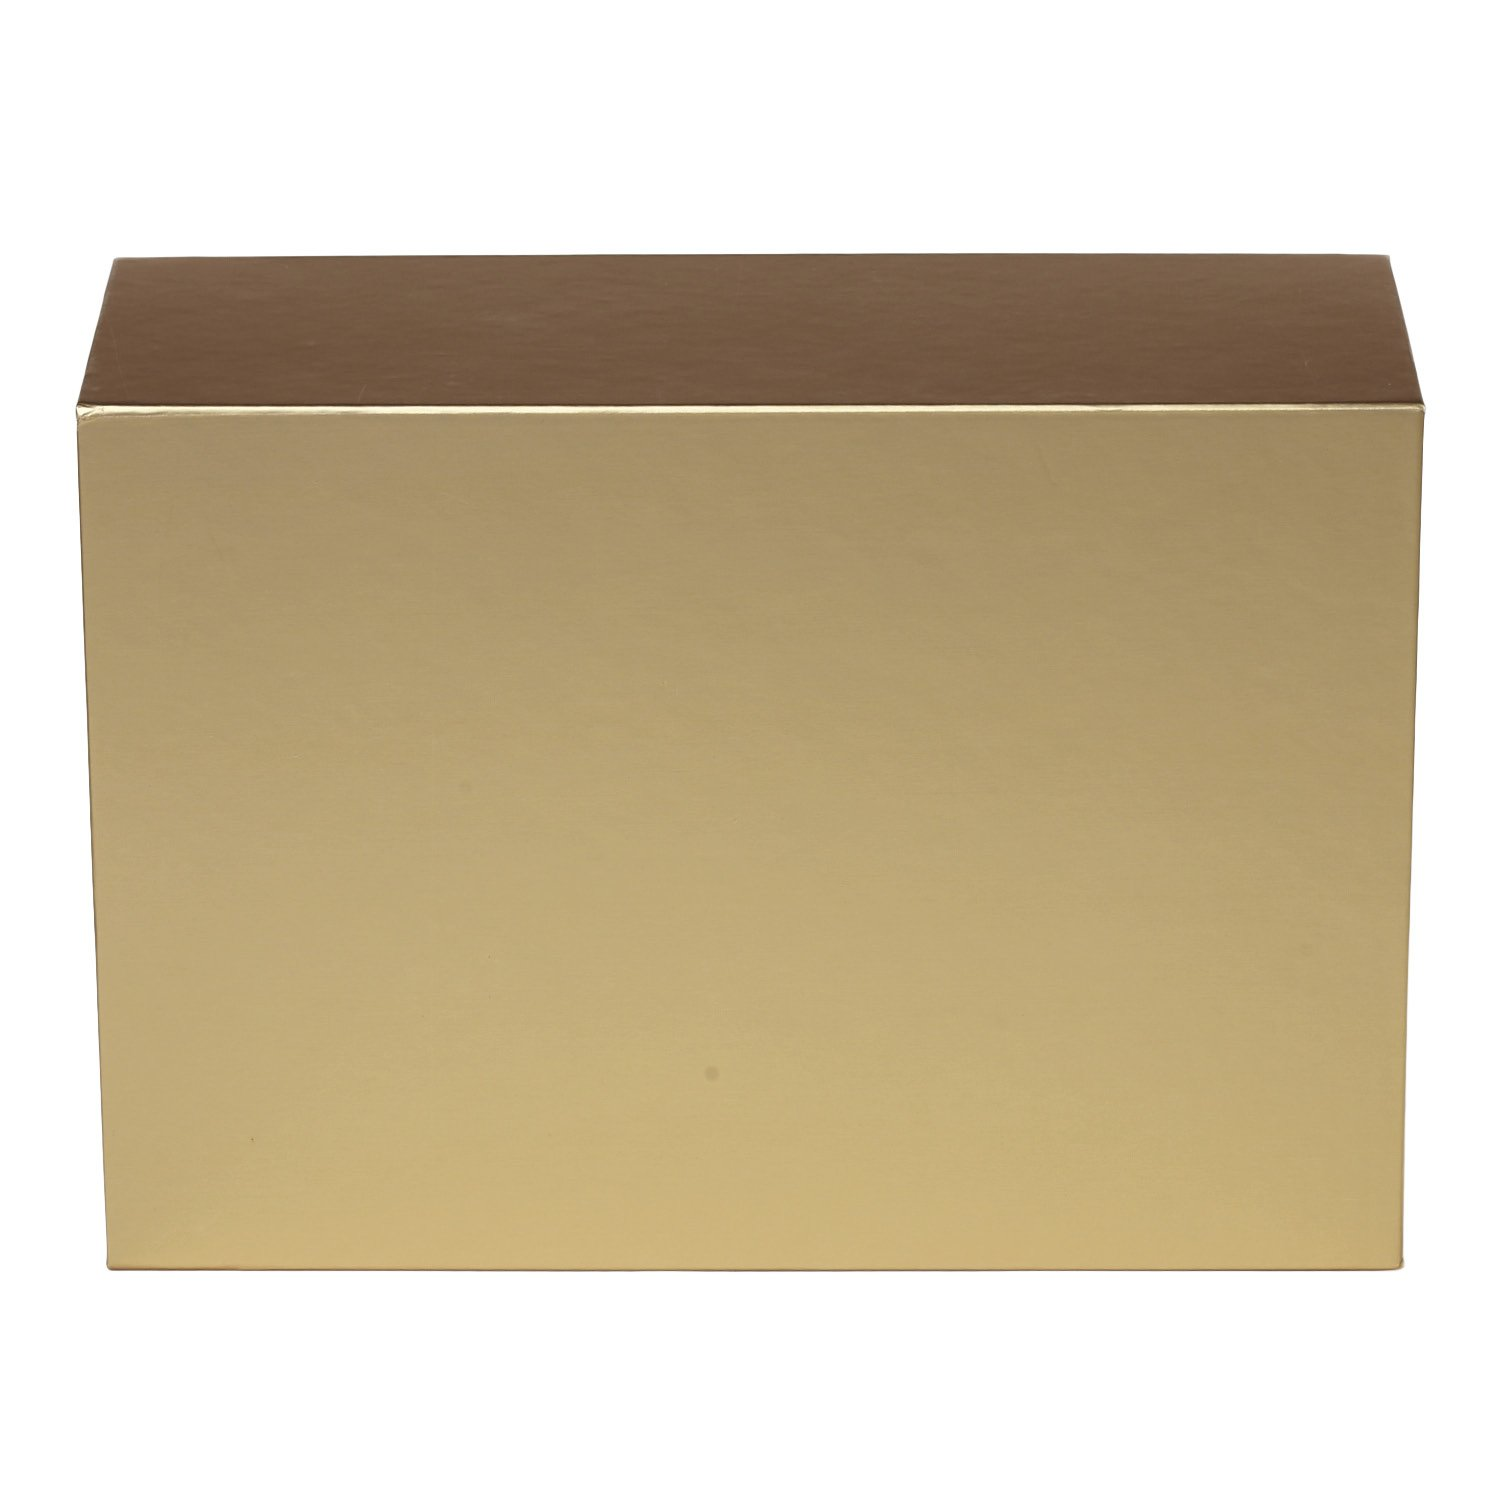 Amazon.com : Jillson Roberts 2-Count Small Magnetic Closure Gift Boxes Available in 5 Colors, Metallic Gold Matte : Office Products